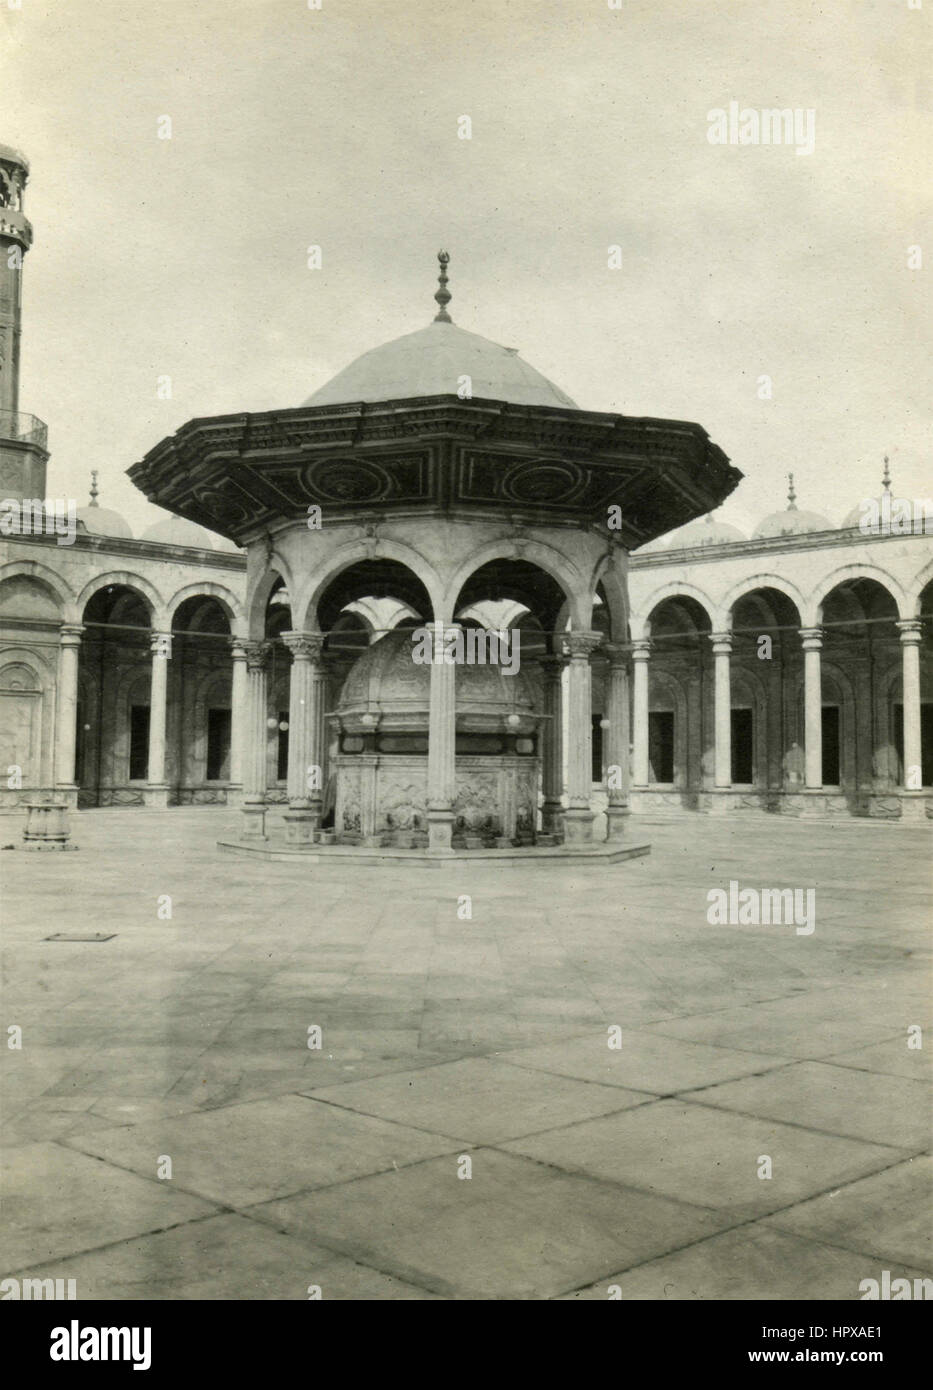 Fountain of the ablutions, Mosque of Muhammad Ali, Cairo, Egypt - Stock Image